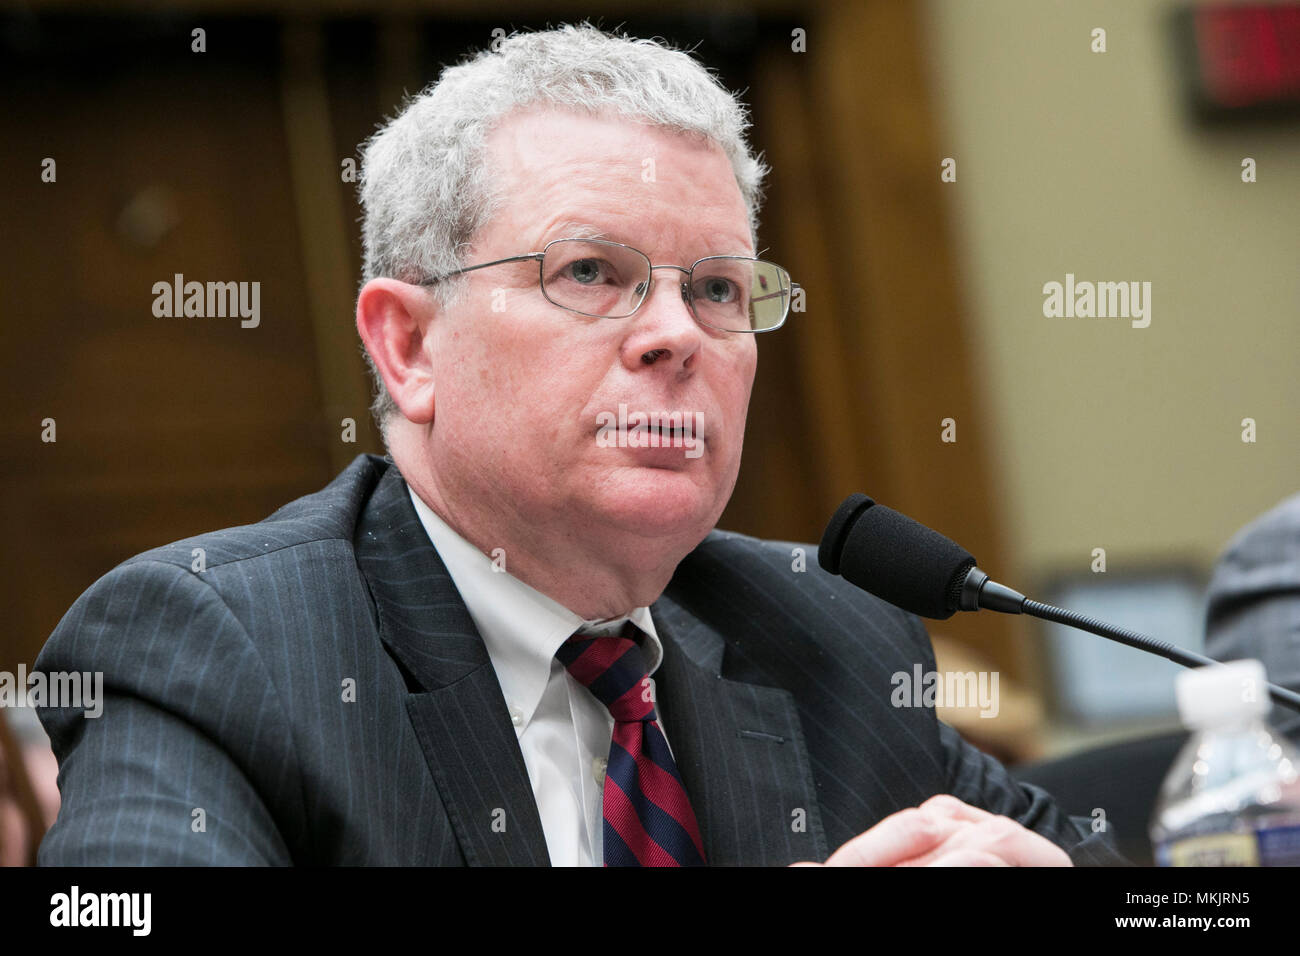 Washington, D.C., on May 8, 2018. J. Christopher Smith, Former President and CEO, H.D. Smith Wholesale Drug Company, testifies before the Committee on Energy and Commerce, Subcommittee on Oversight and Investigations during a hearing on the opioid epidemic in Washington, D.C., on May 8, 2018. Credit: Kristoffer Tripplaar/Alamy Live News - Stock Image